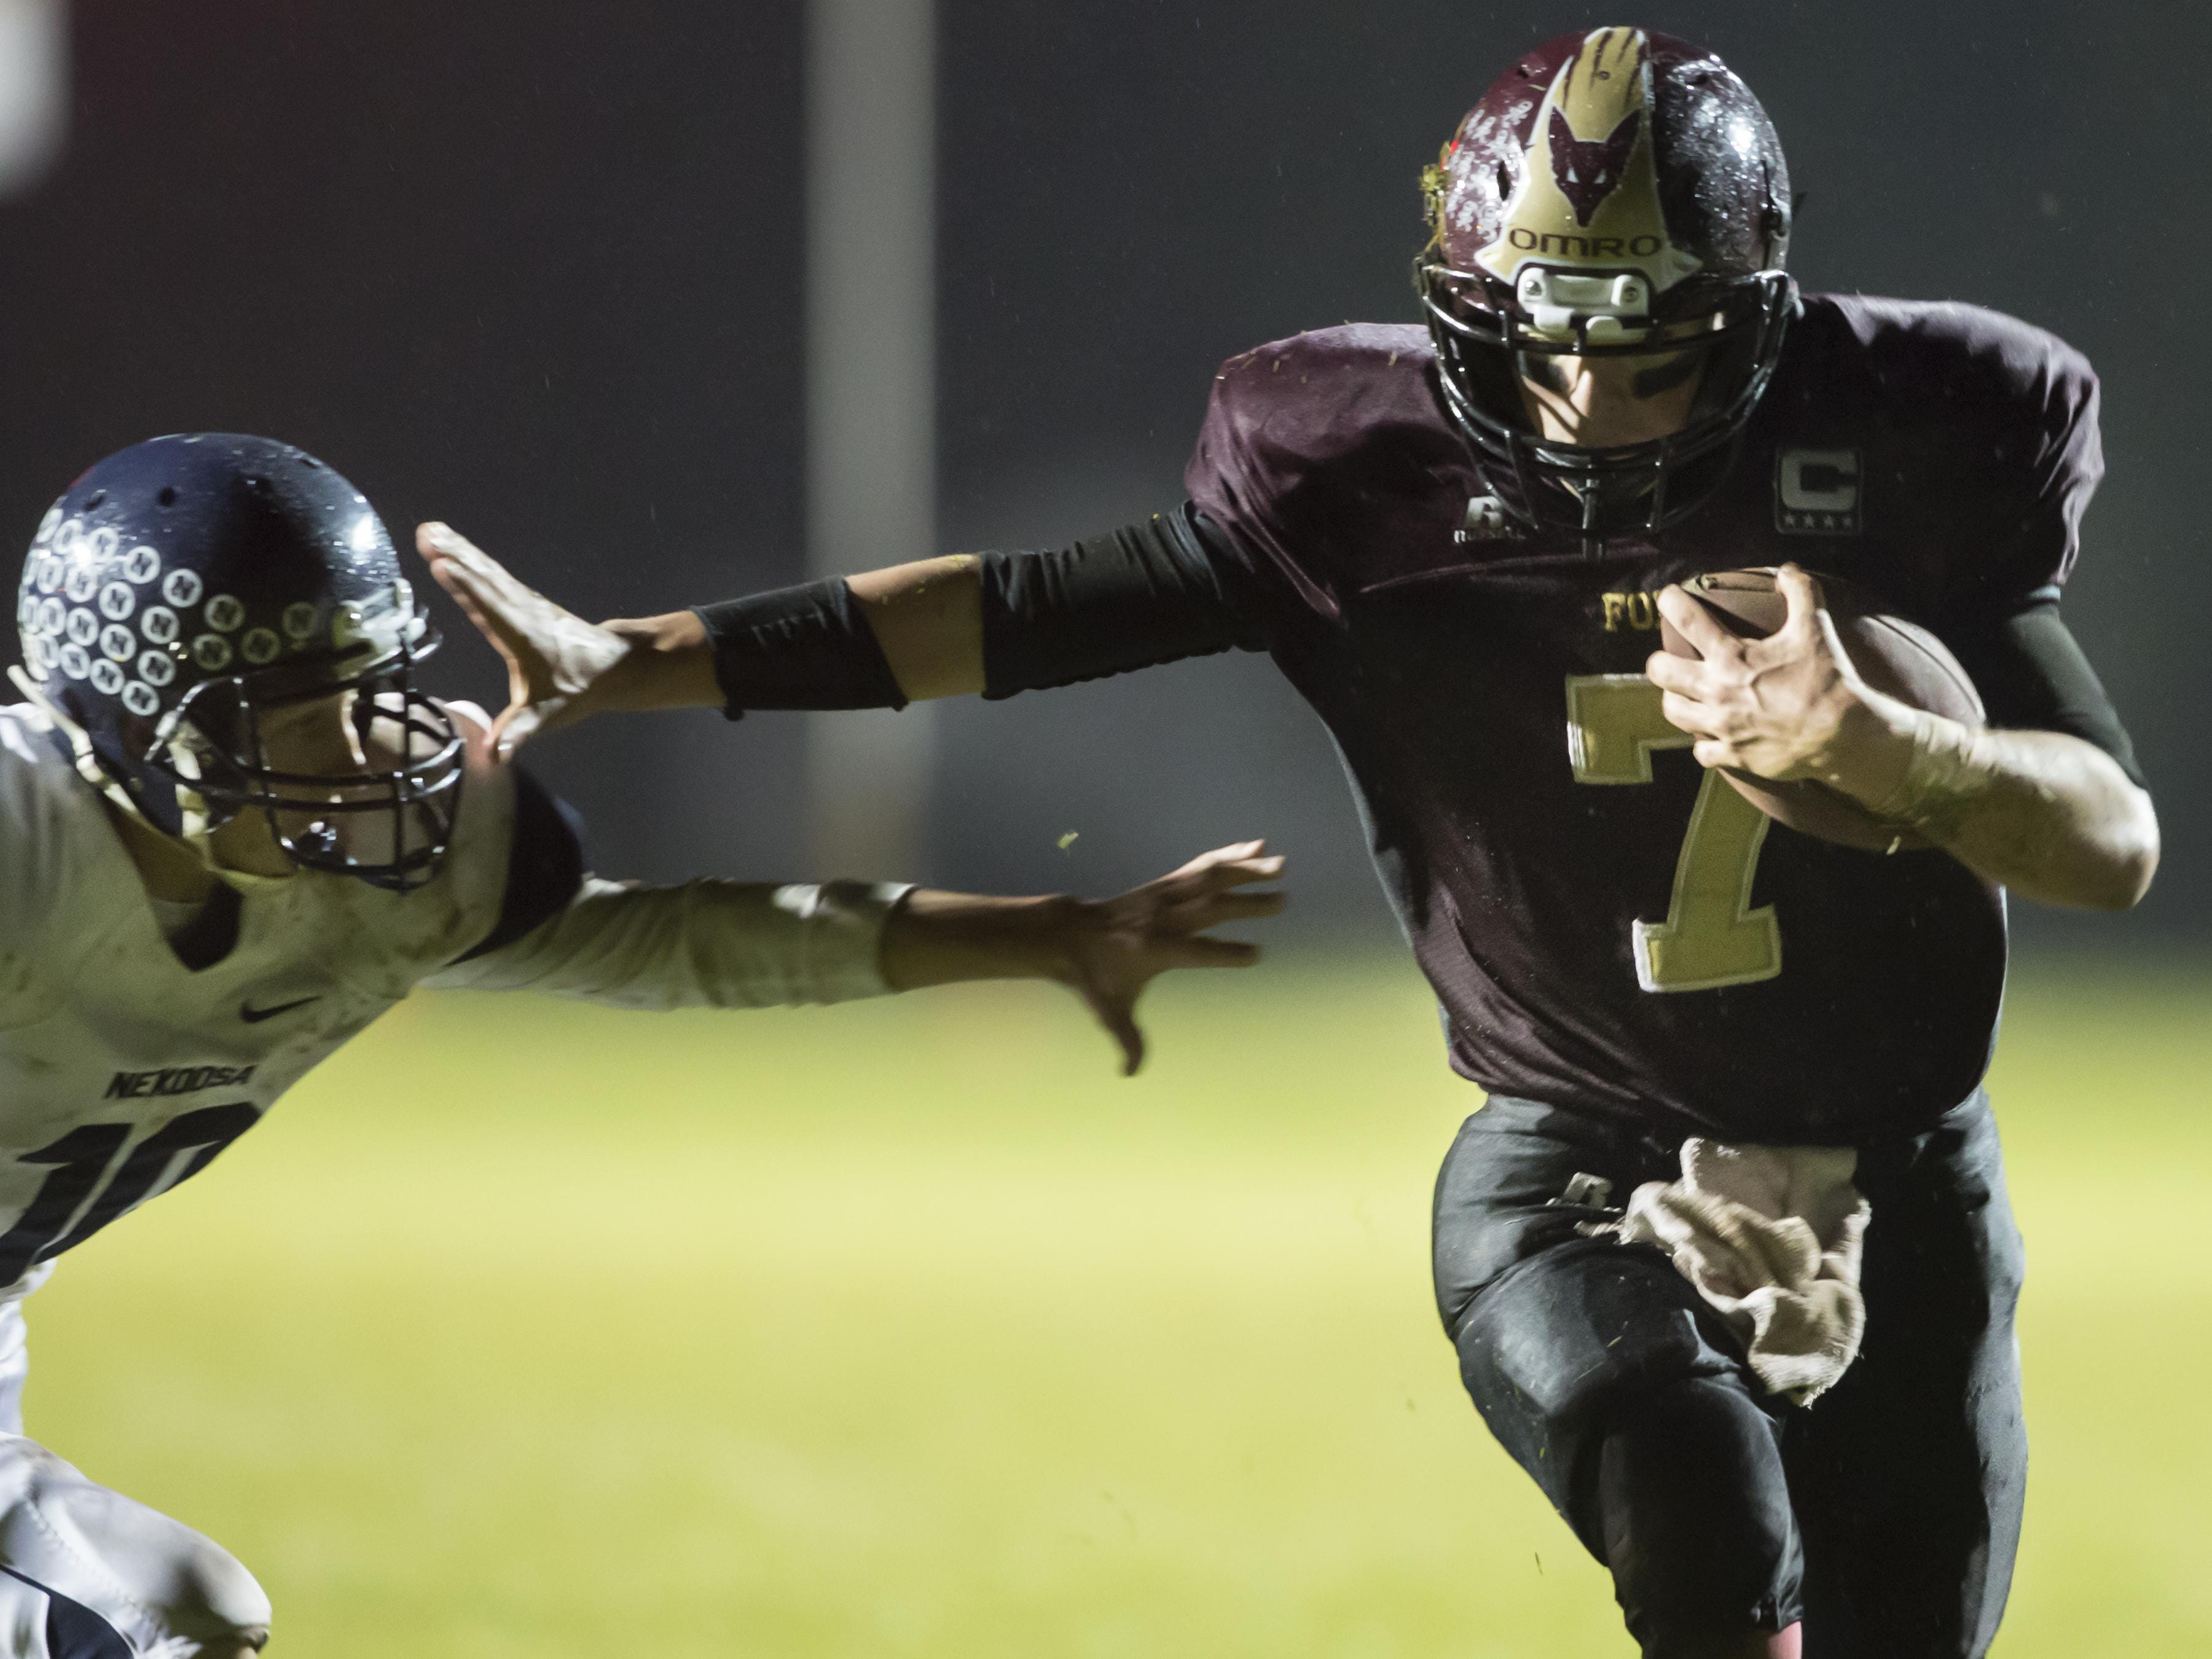 Omro's Spencer Potratz finished the season with 708 passing yards and nine touchdowns against only one interception, while rushing for 739 yards and eight touchdowns.